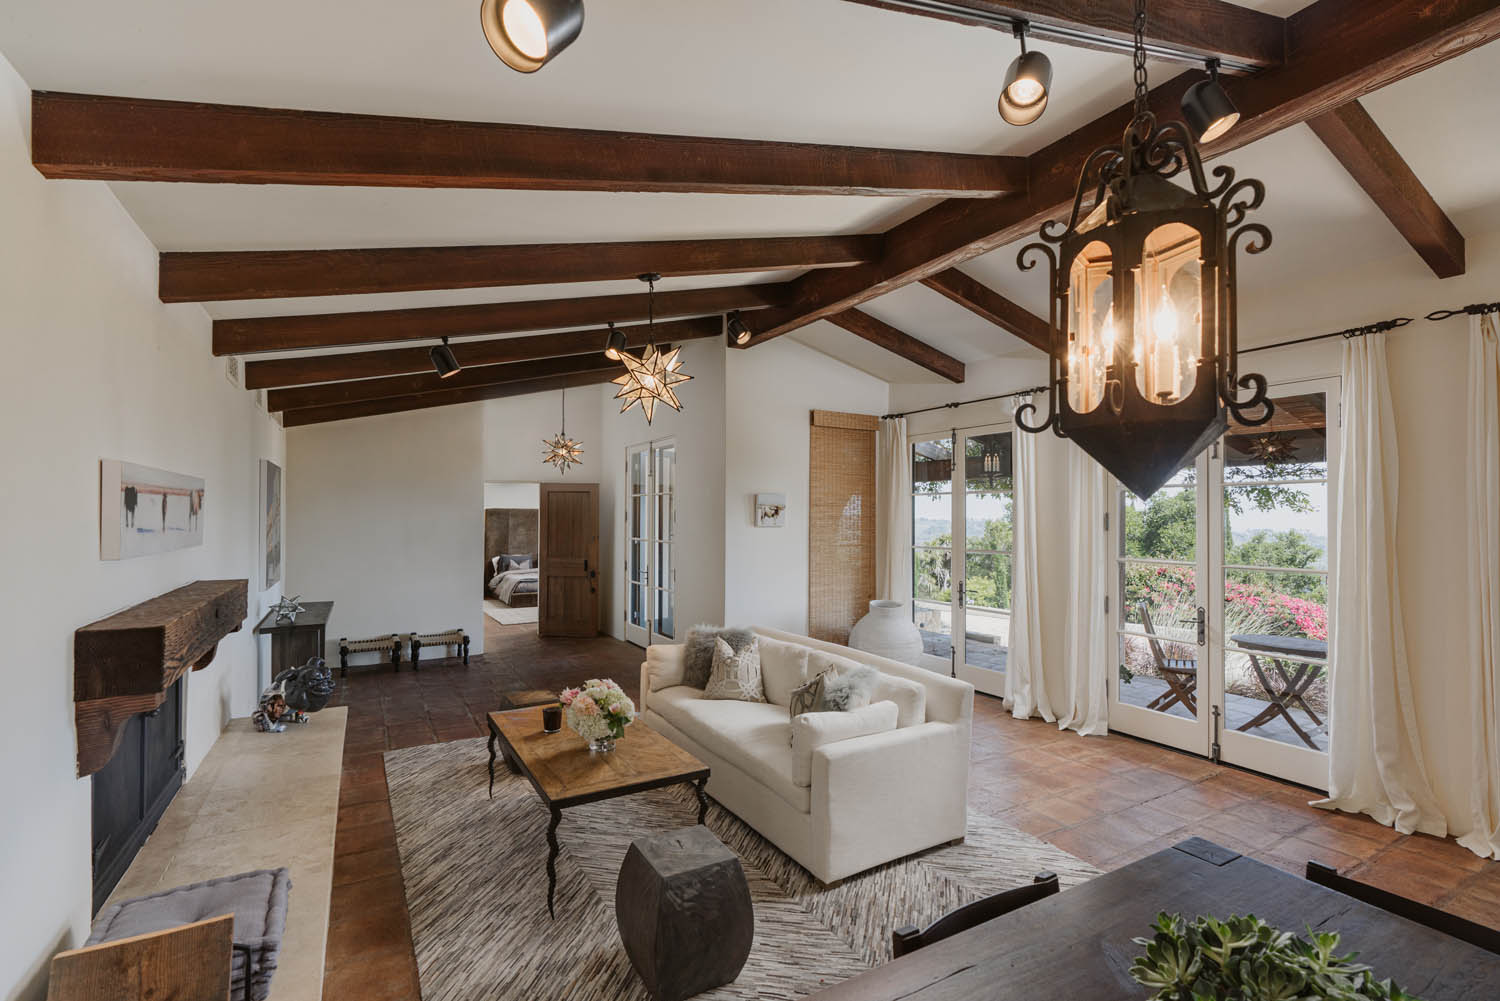 Property for Sale: 956 Mariposa Lane, Montecito, CA List Price: $14,500,000 6 Beds 7 Full Baths 2 Half Baths 7,491 Sq Ft Main House Romantic Ocean View Estate!